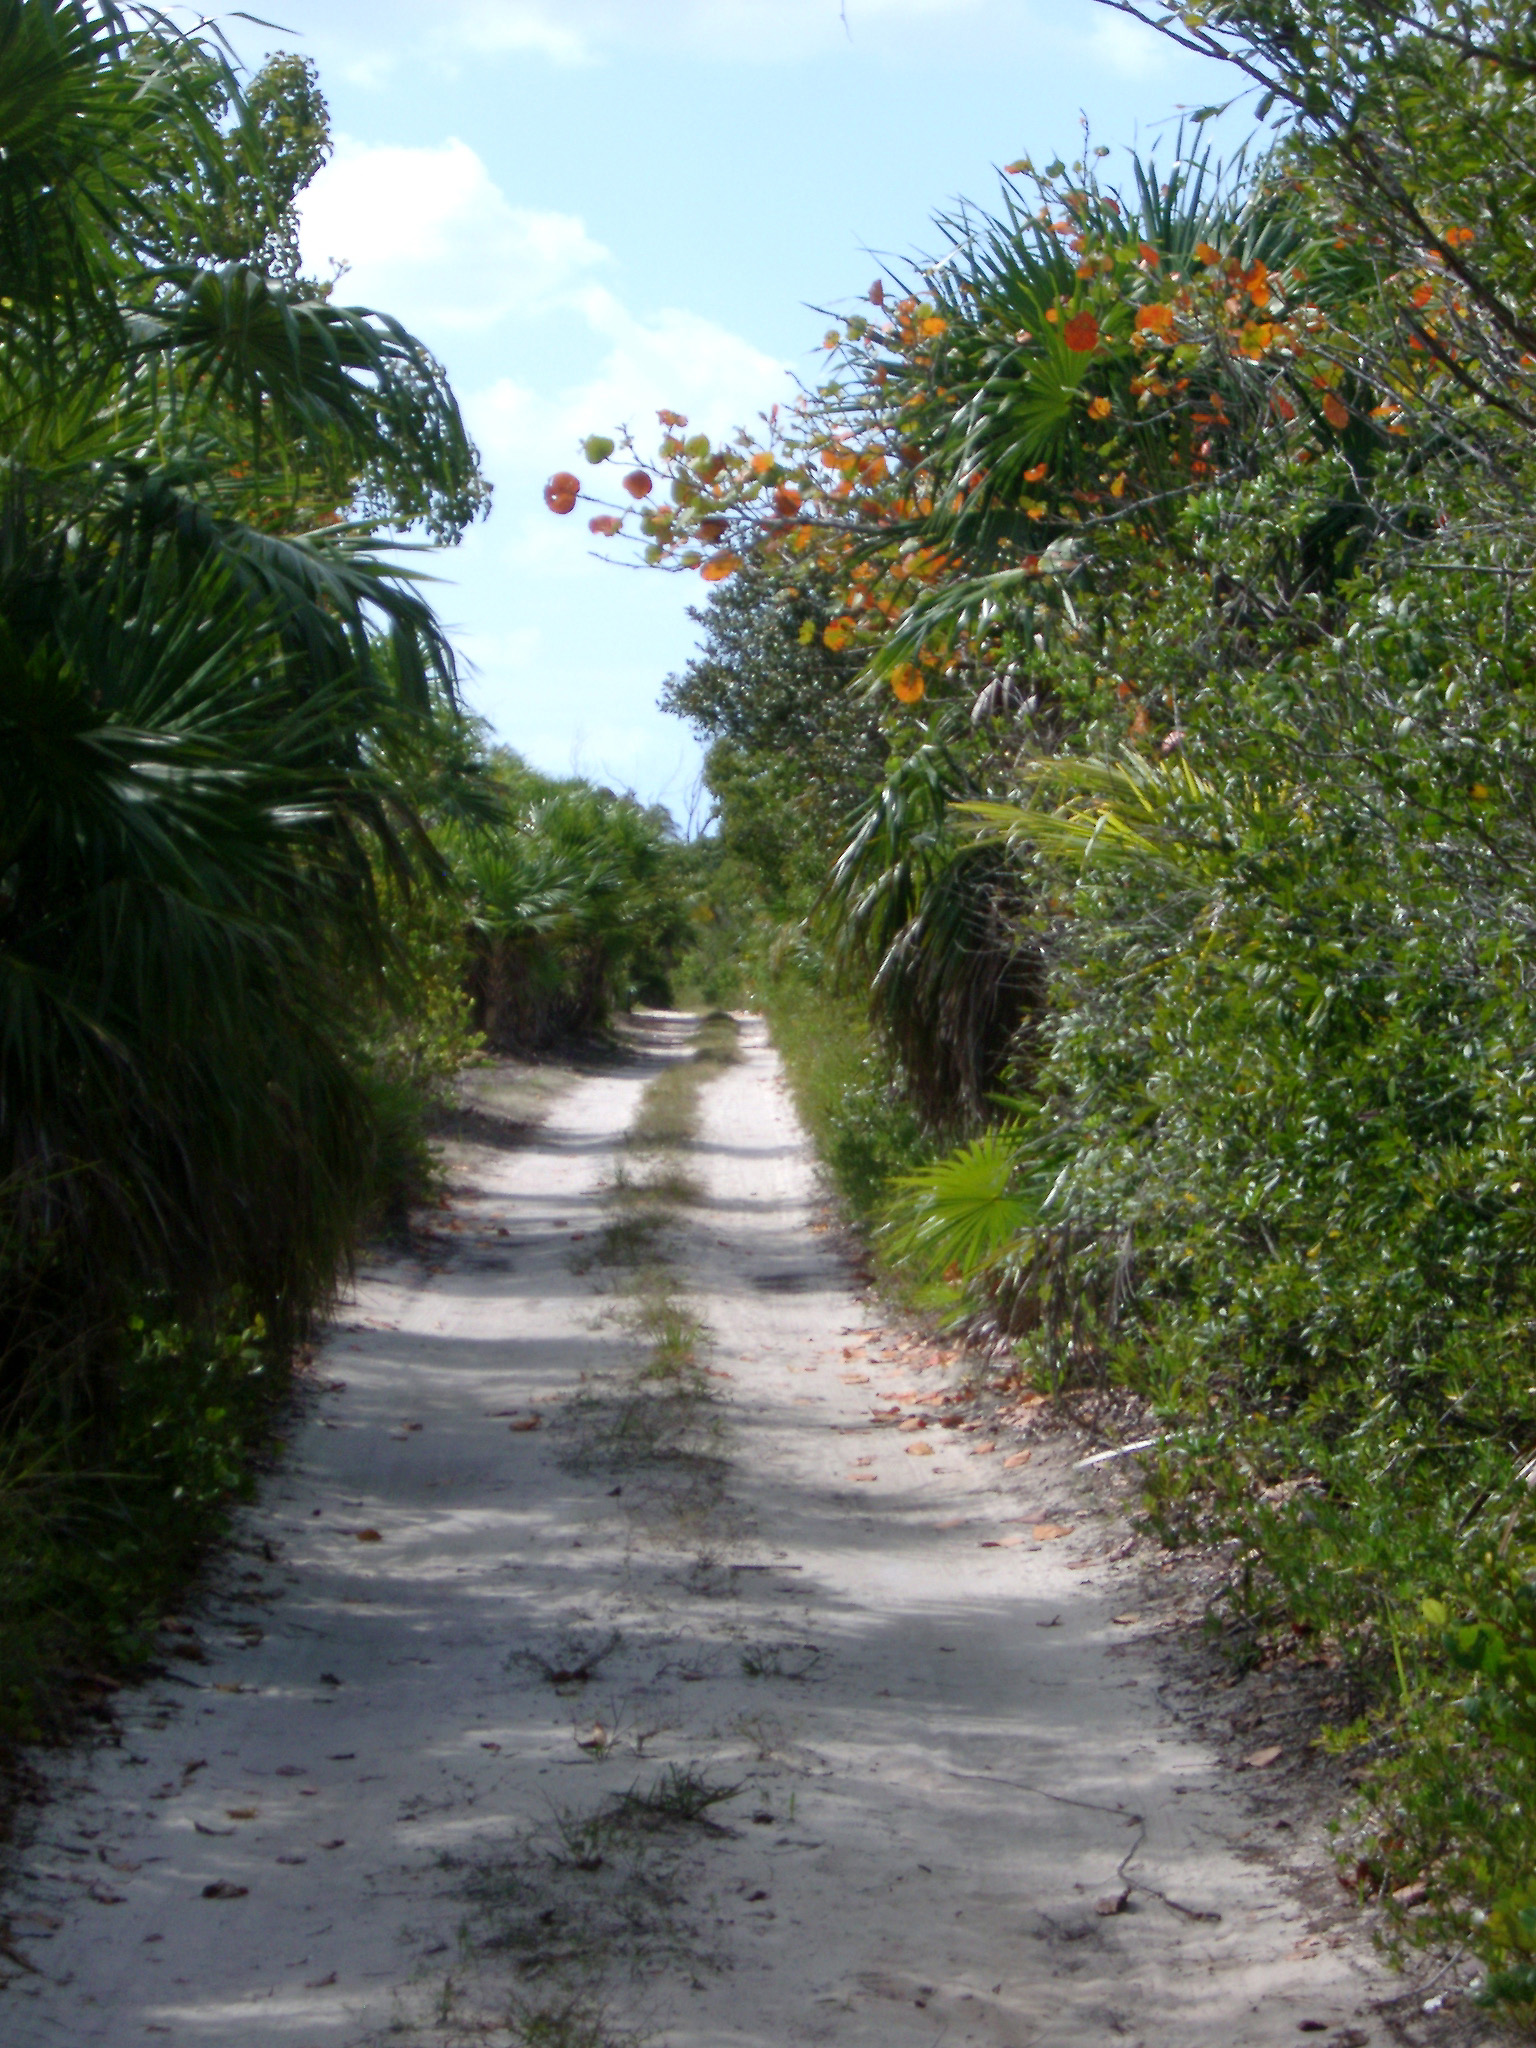 Entrance Road to Beautiful Punta Allen Mexico Surrounded by Green Plants and Grasses.